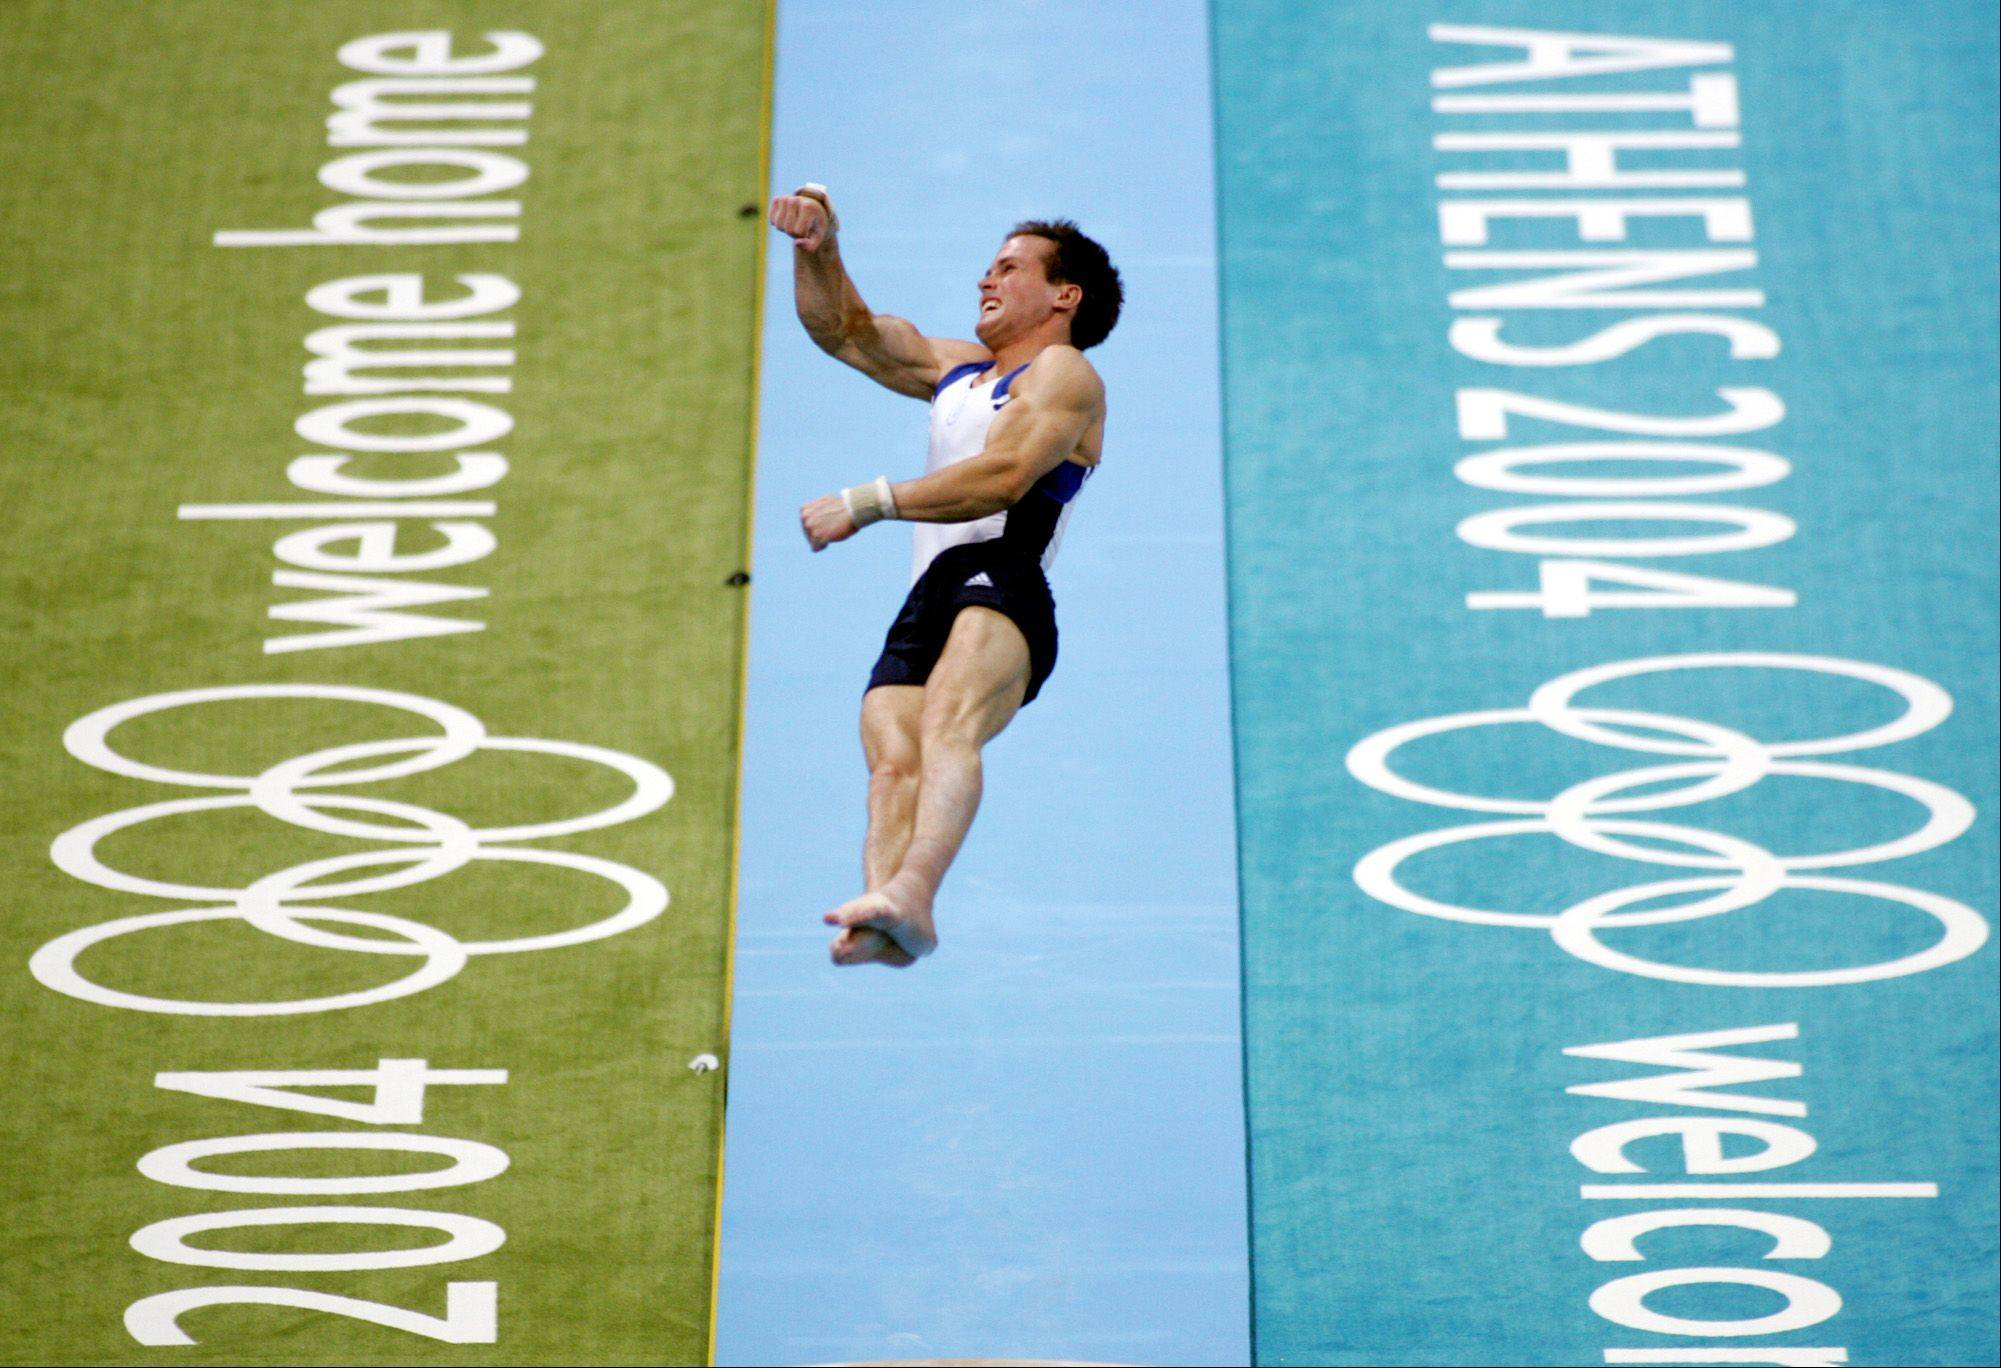 USA's Paul Hamm launches off the vault at the 2004 Olympic Games in Athens.